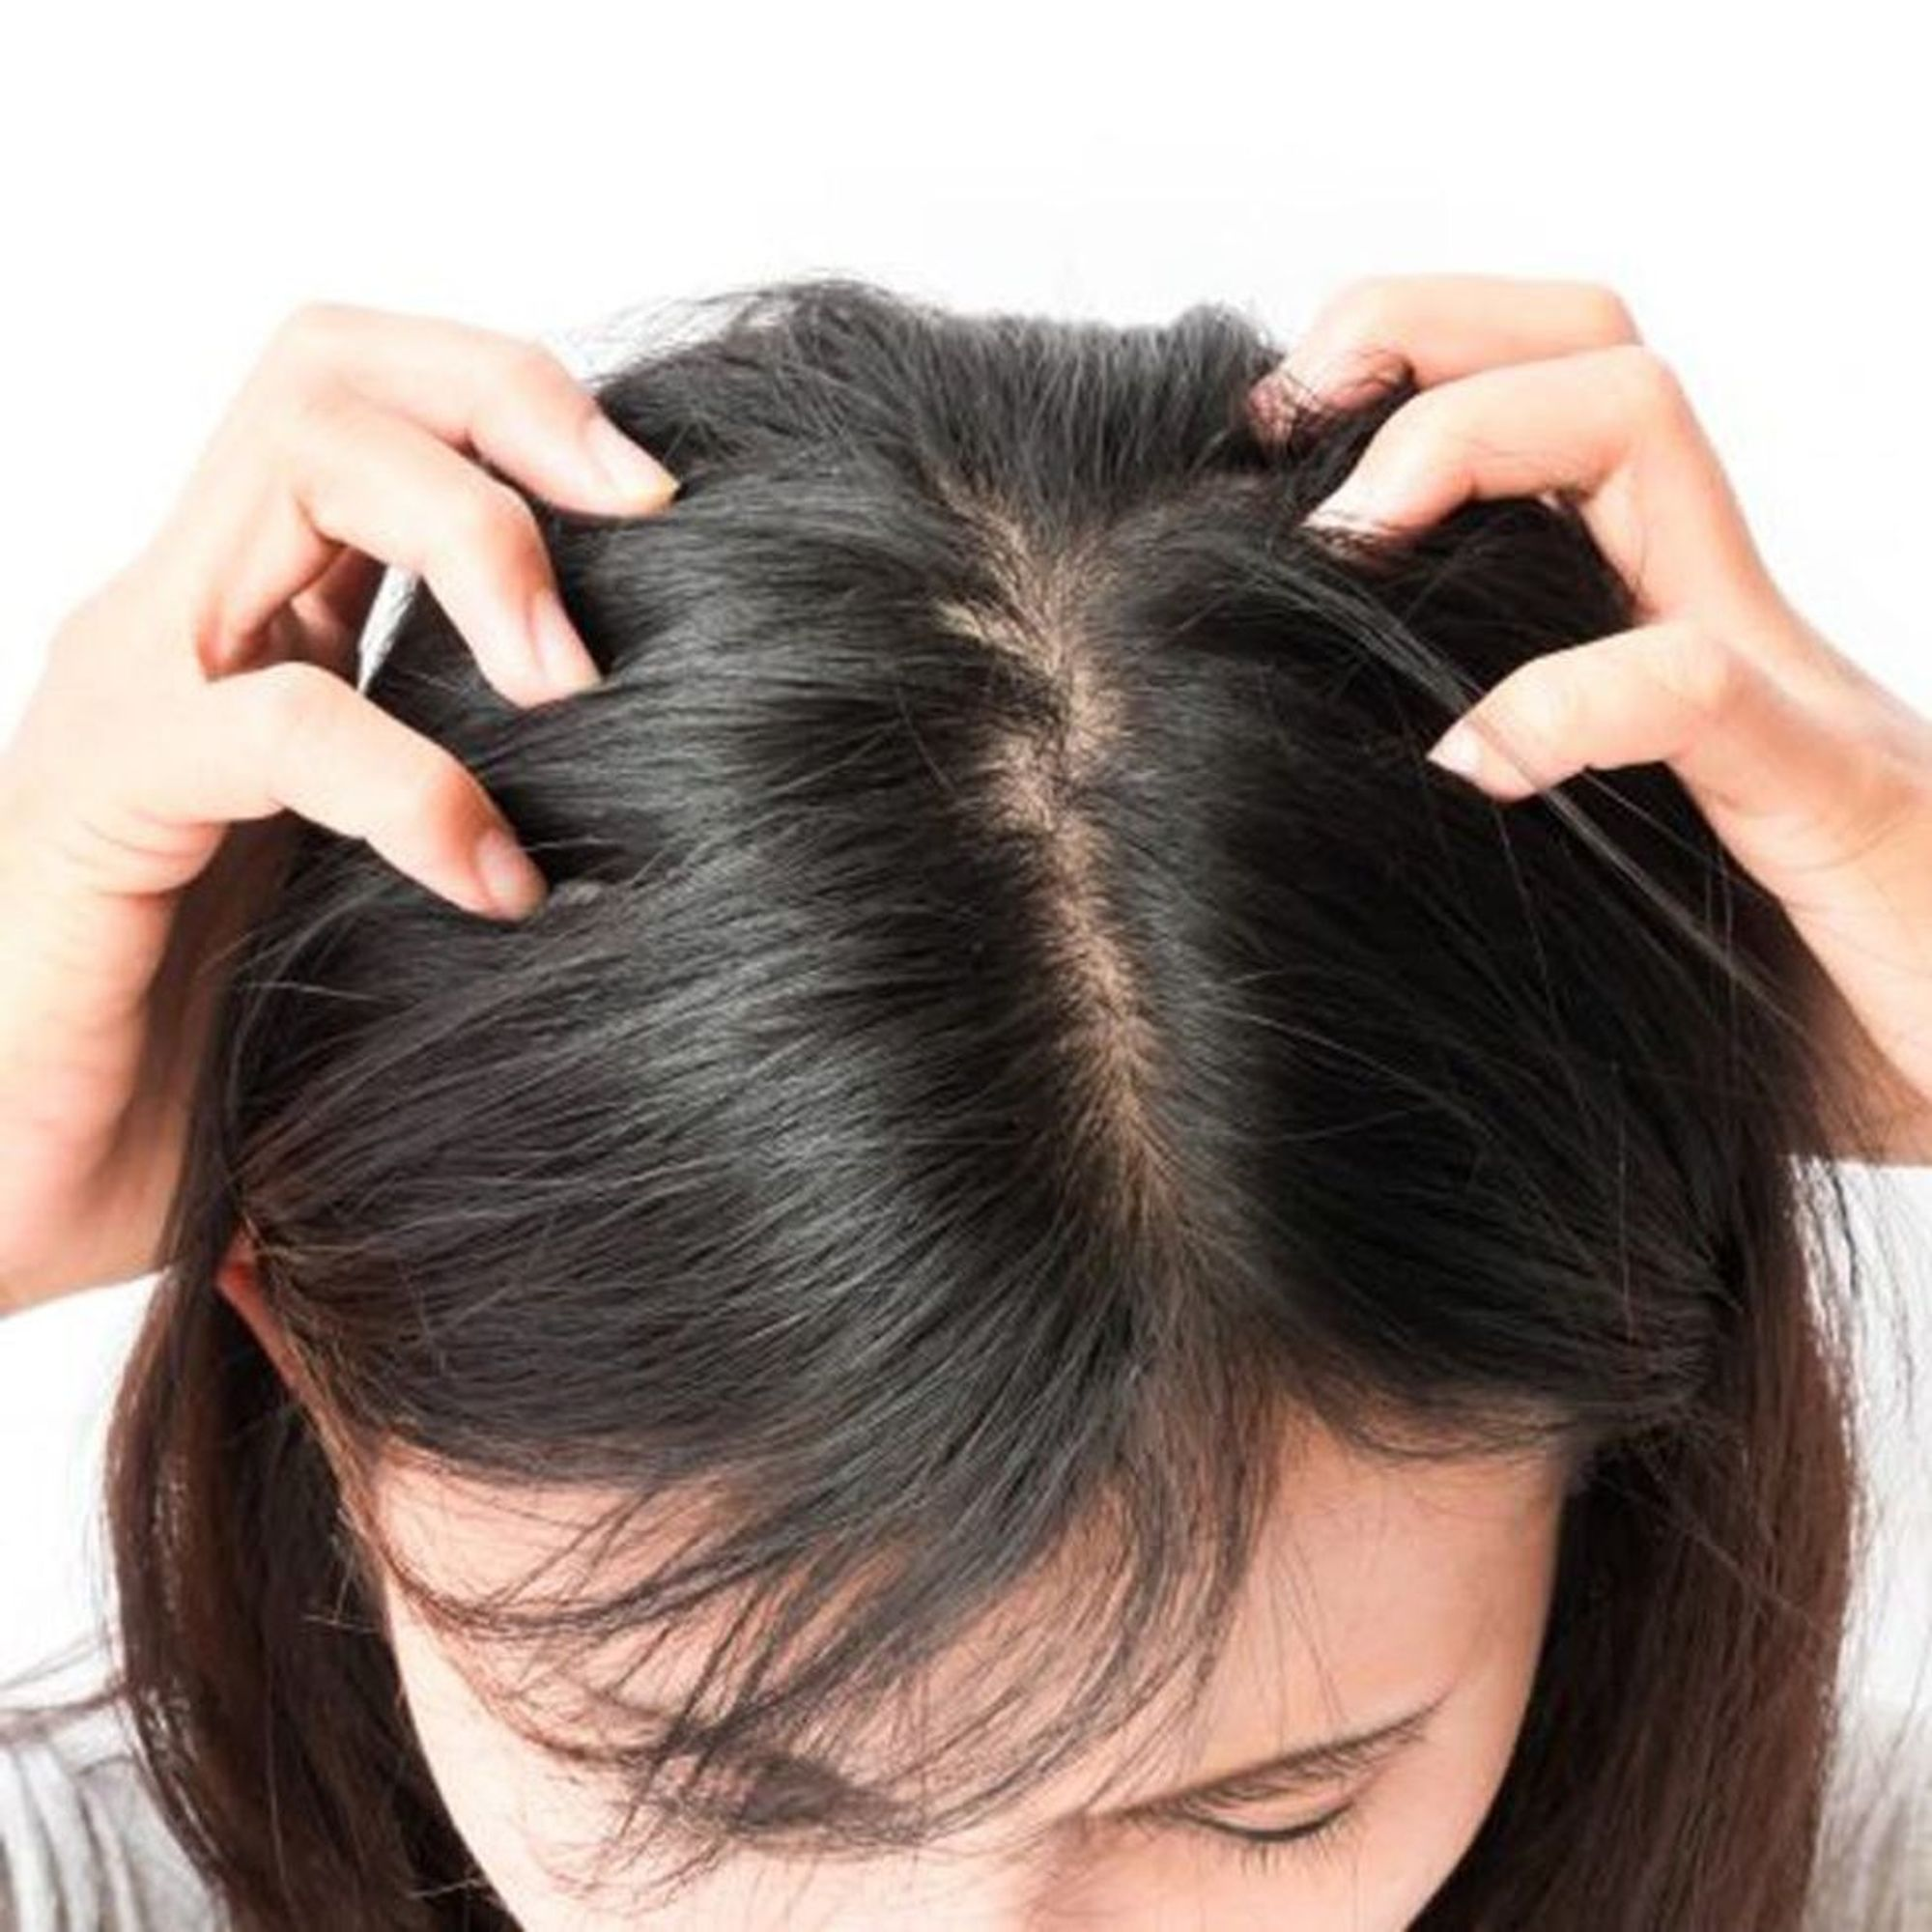 How To Treat Scalp Zits According To Experts Brit Co